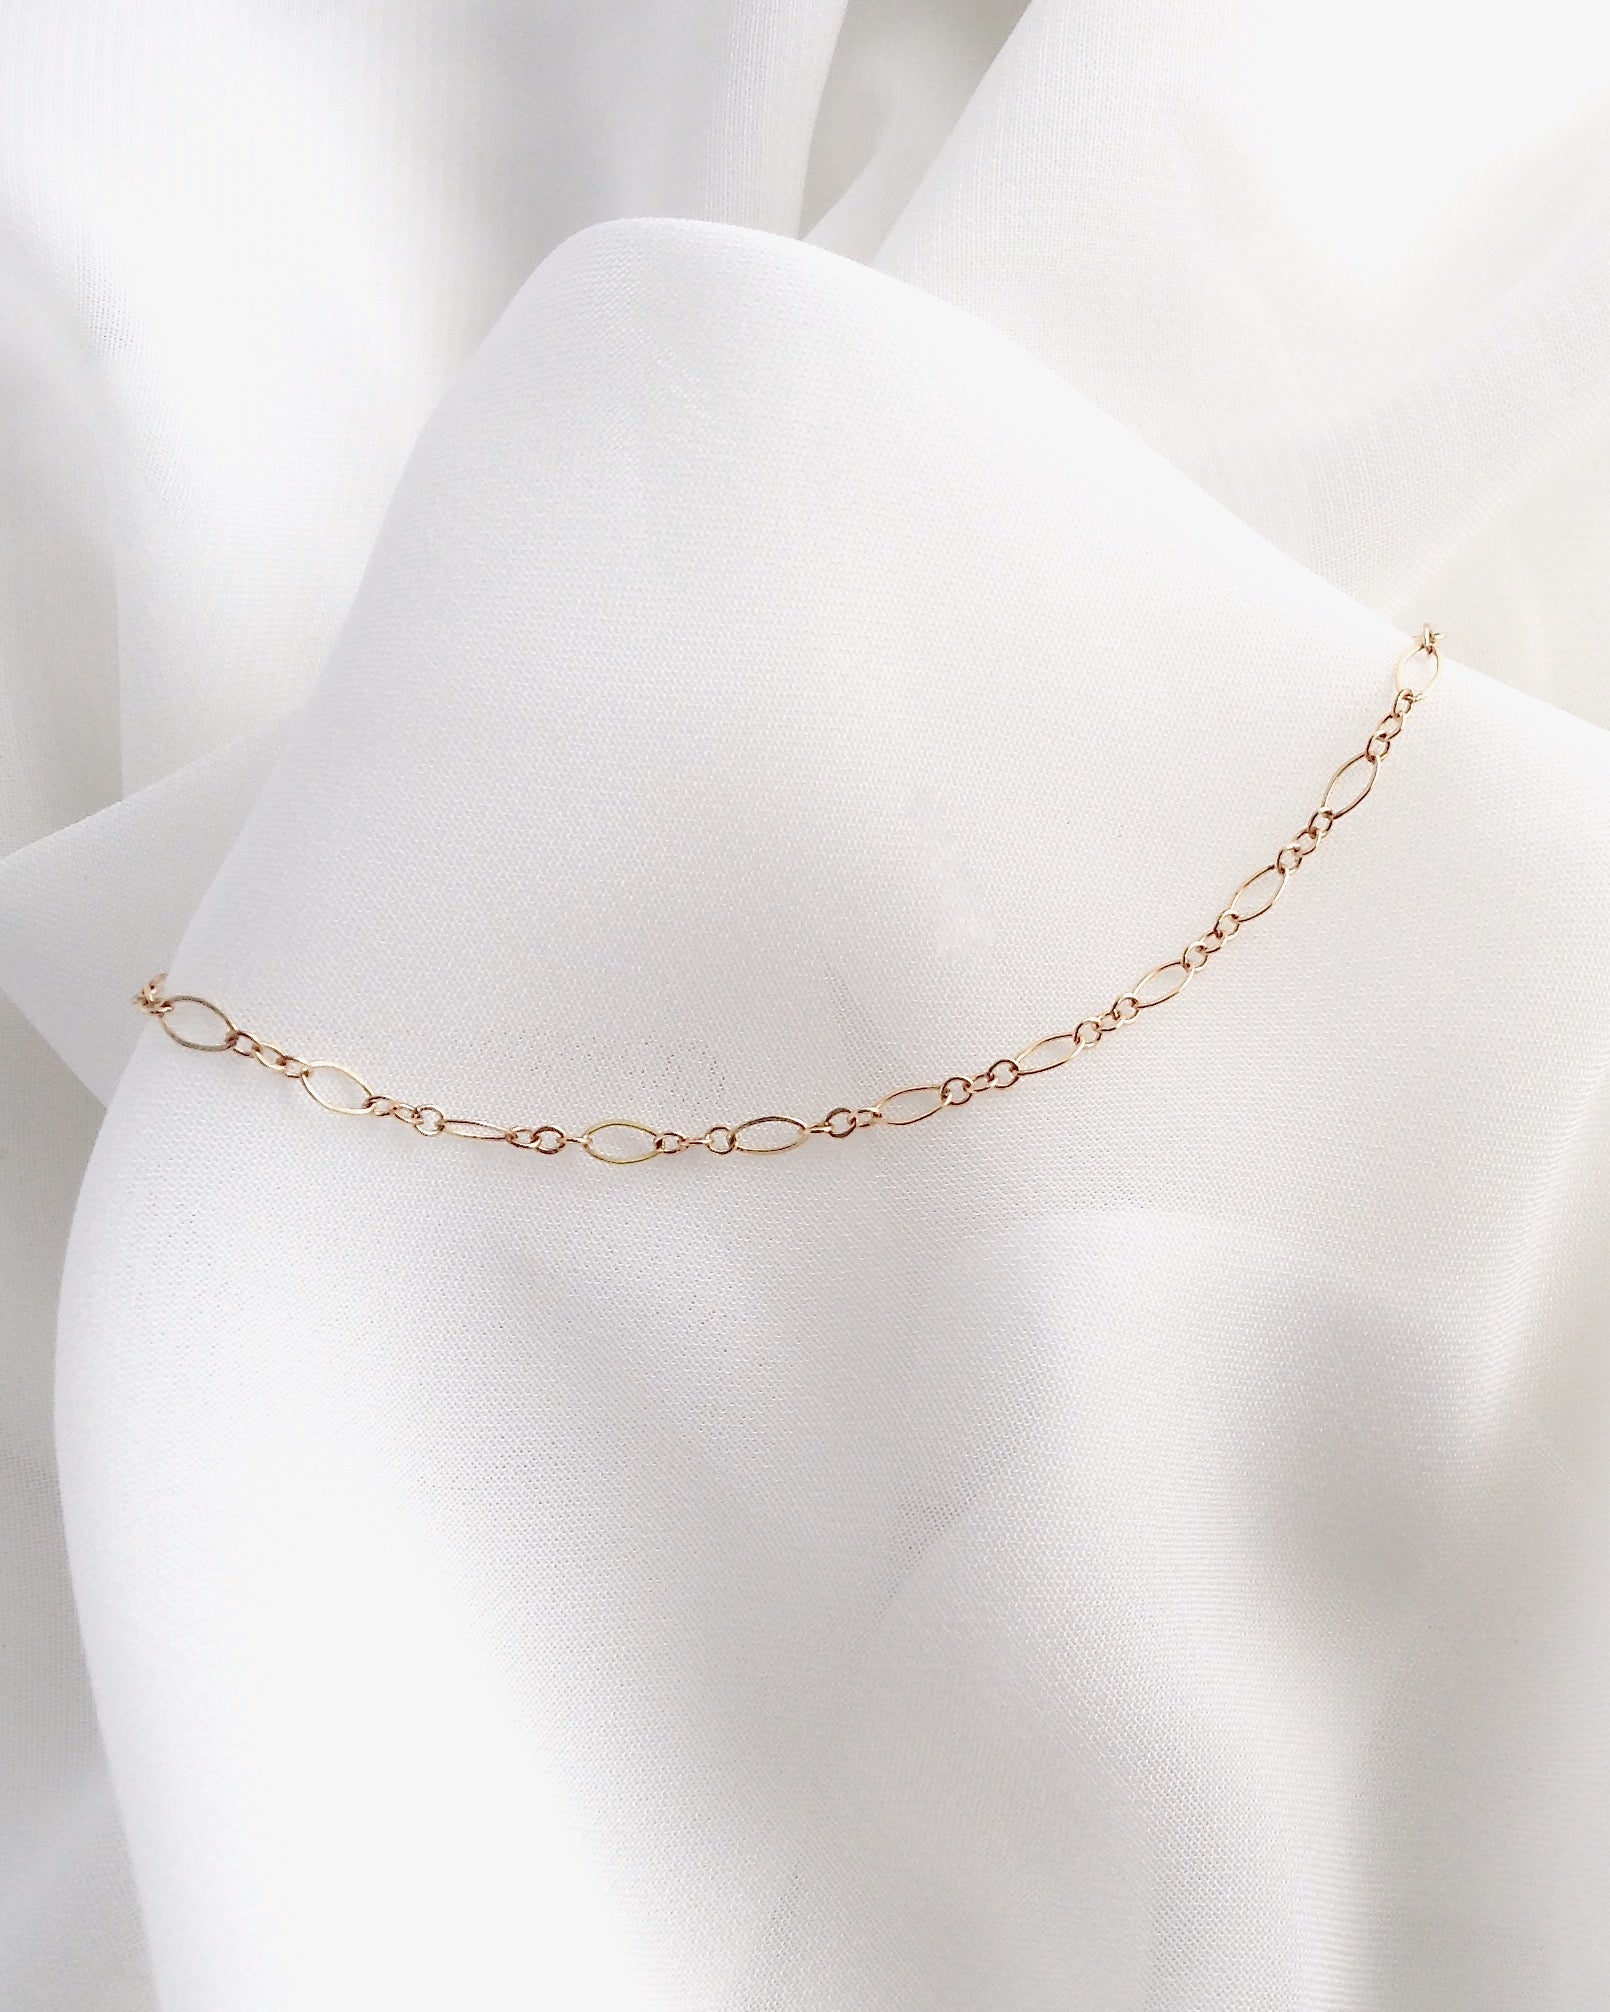 Oval Link Delicate Anklet | Minimal Dainty Anklet in Gold Filled or Sterling Silver | IB Jewelry